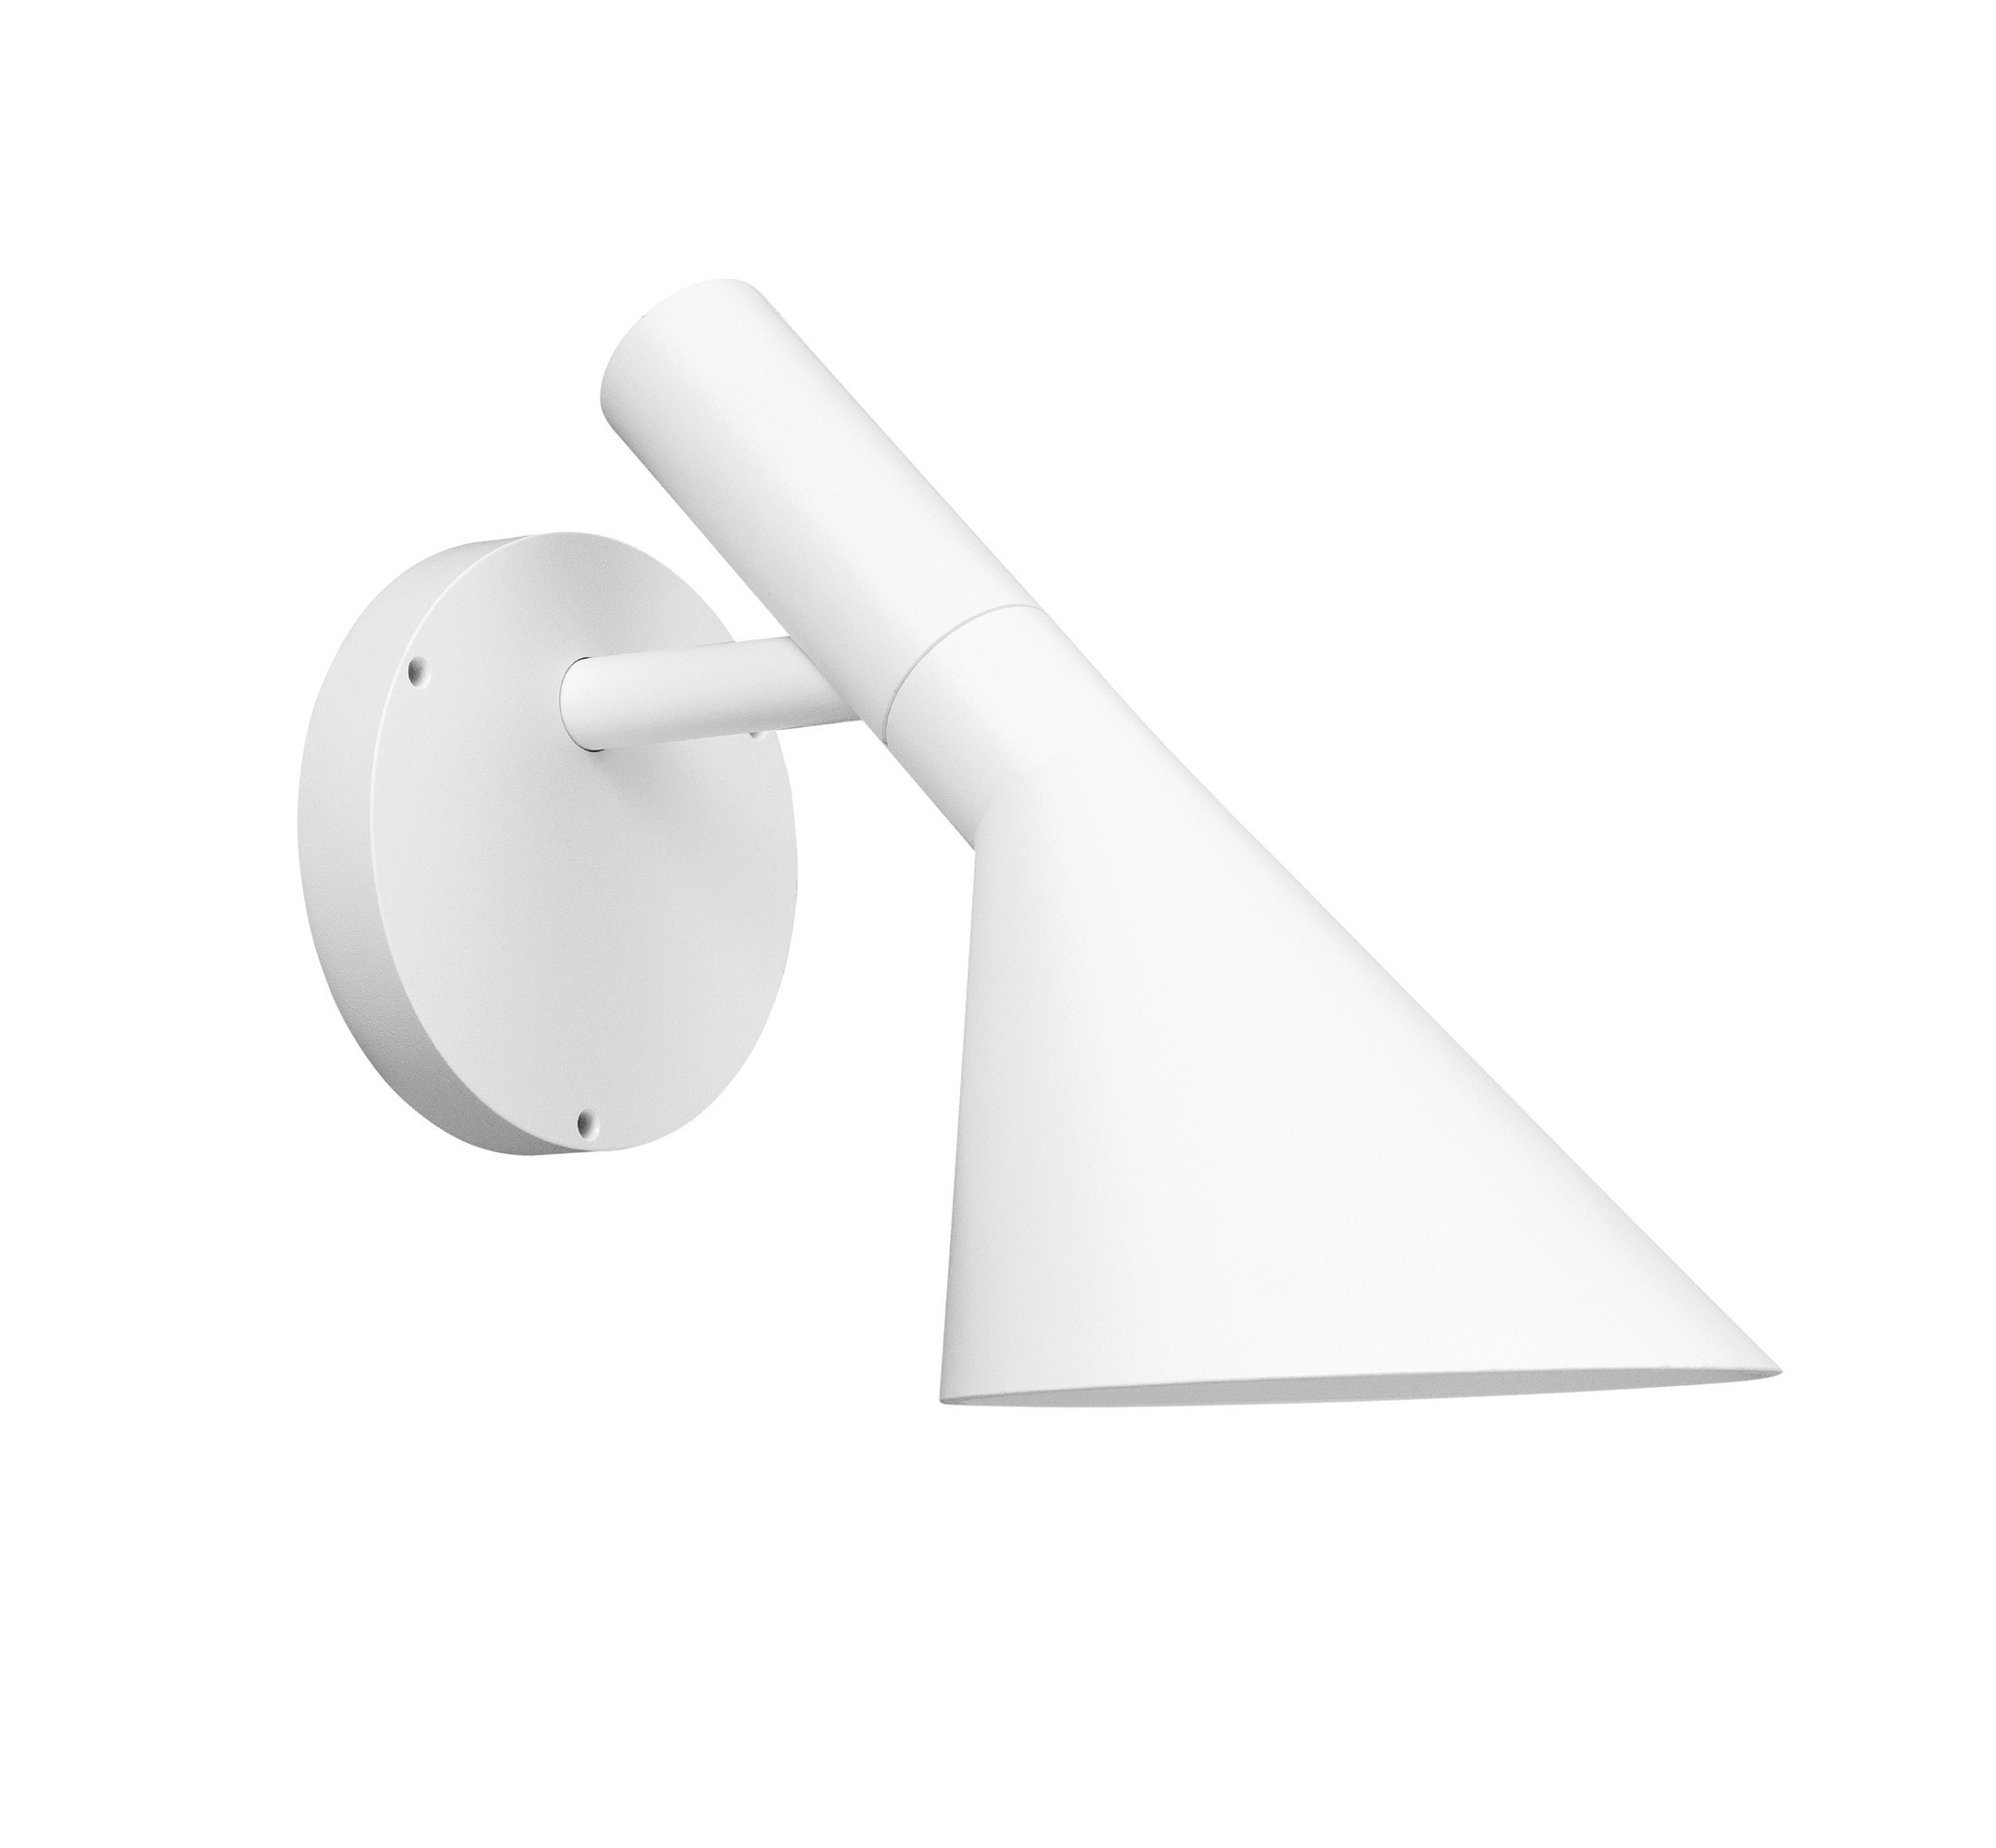 Louis Poulsen AJ 50 LED Wall Lamp